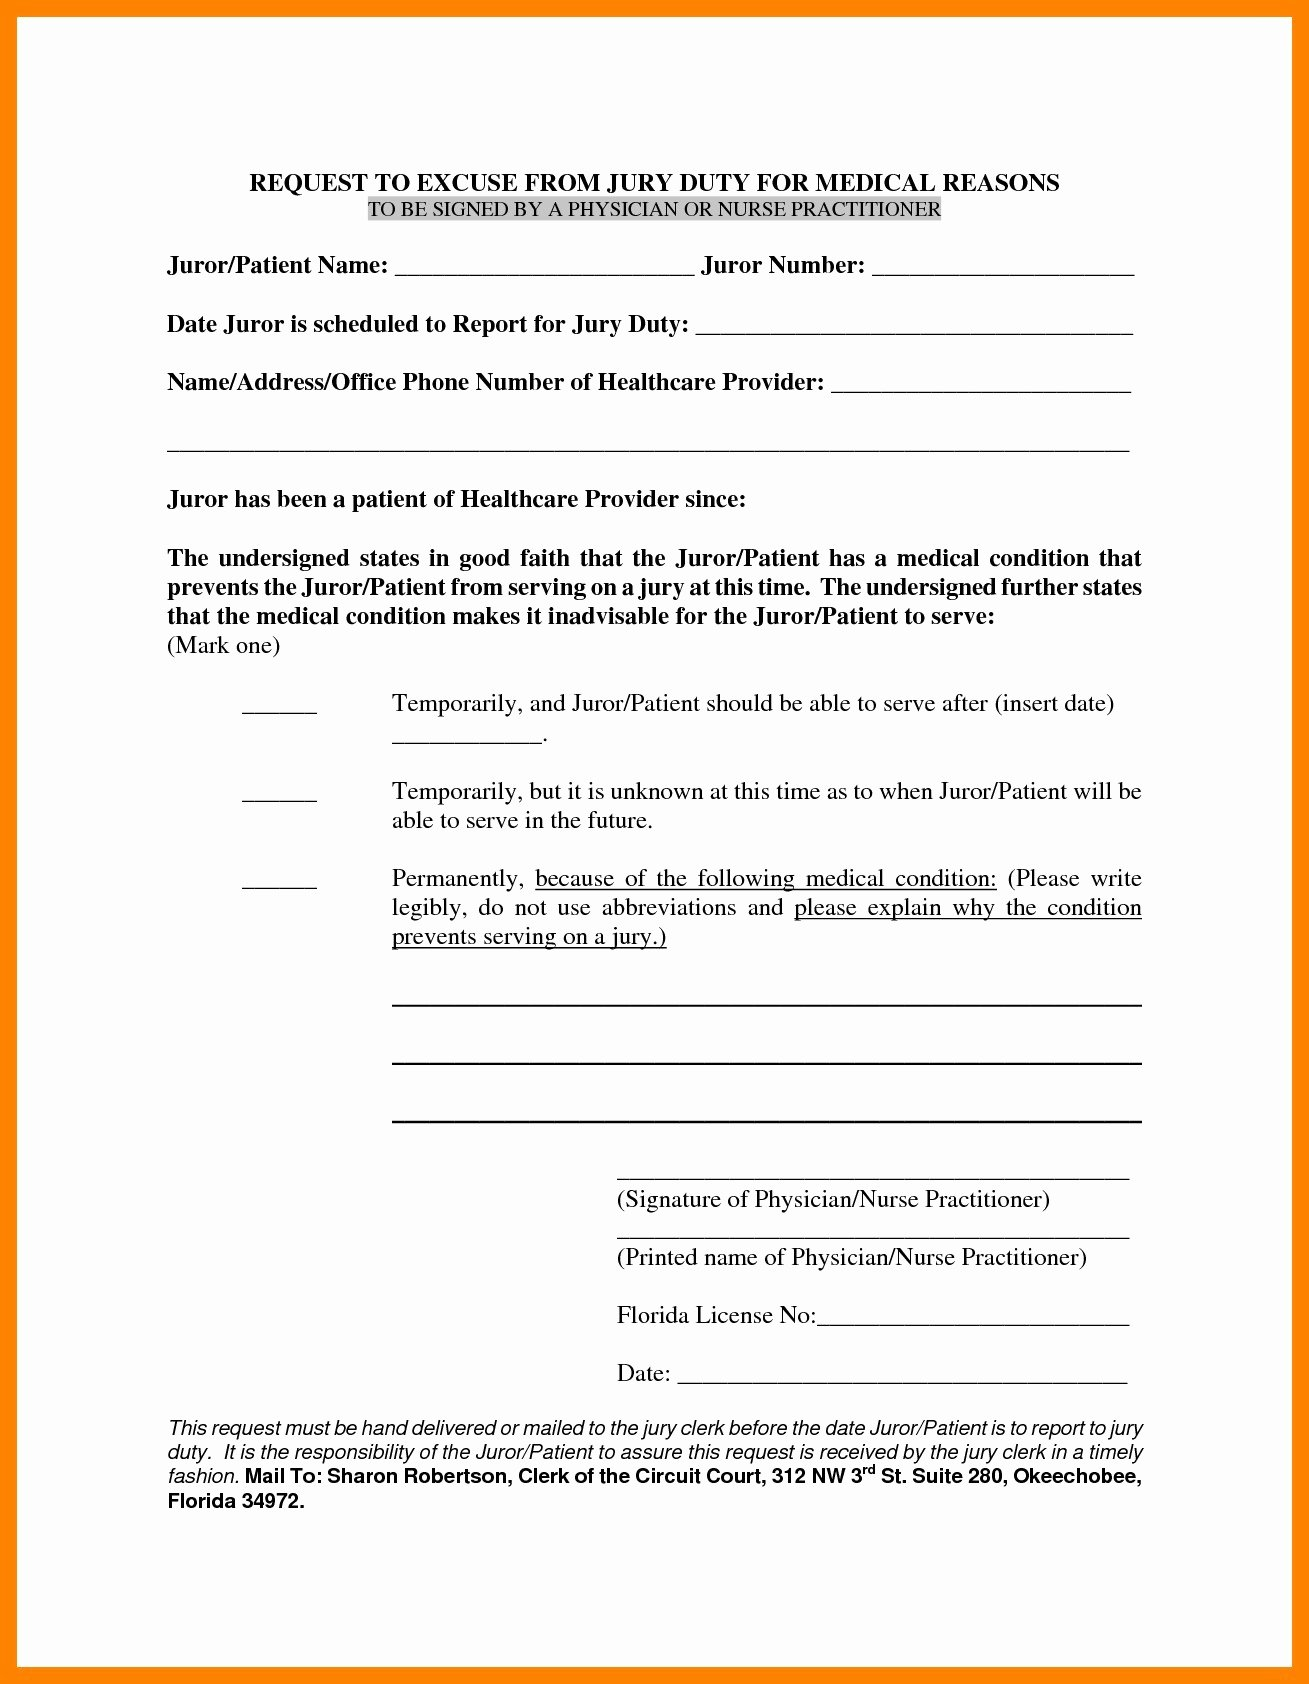 Sample Jury Excuse Letter Beautiful Jury Duty Medical Excuse Letter Template Samples